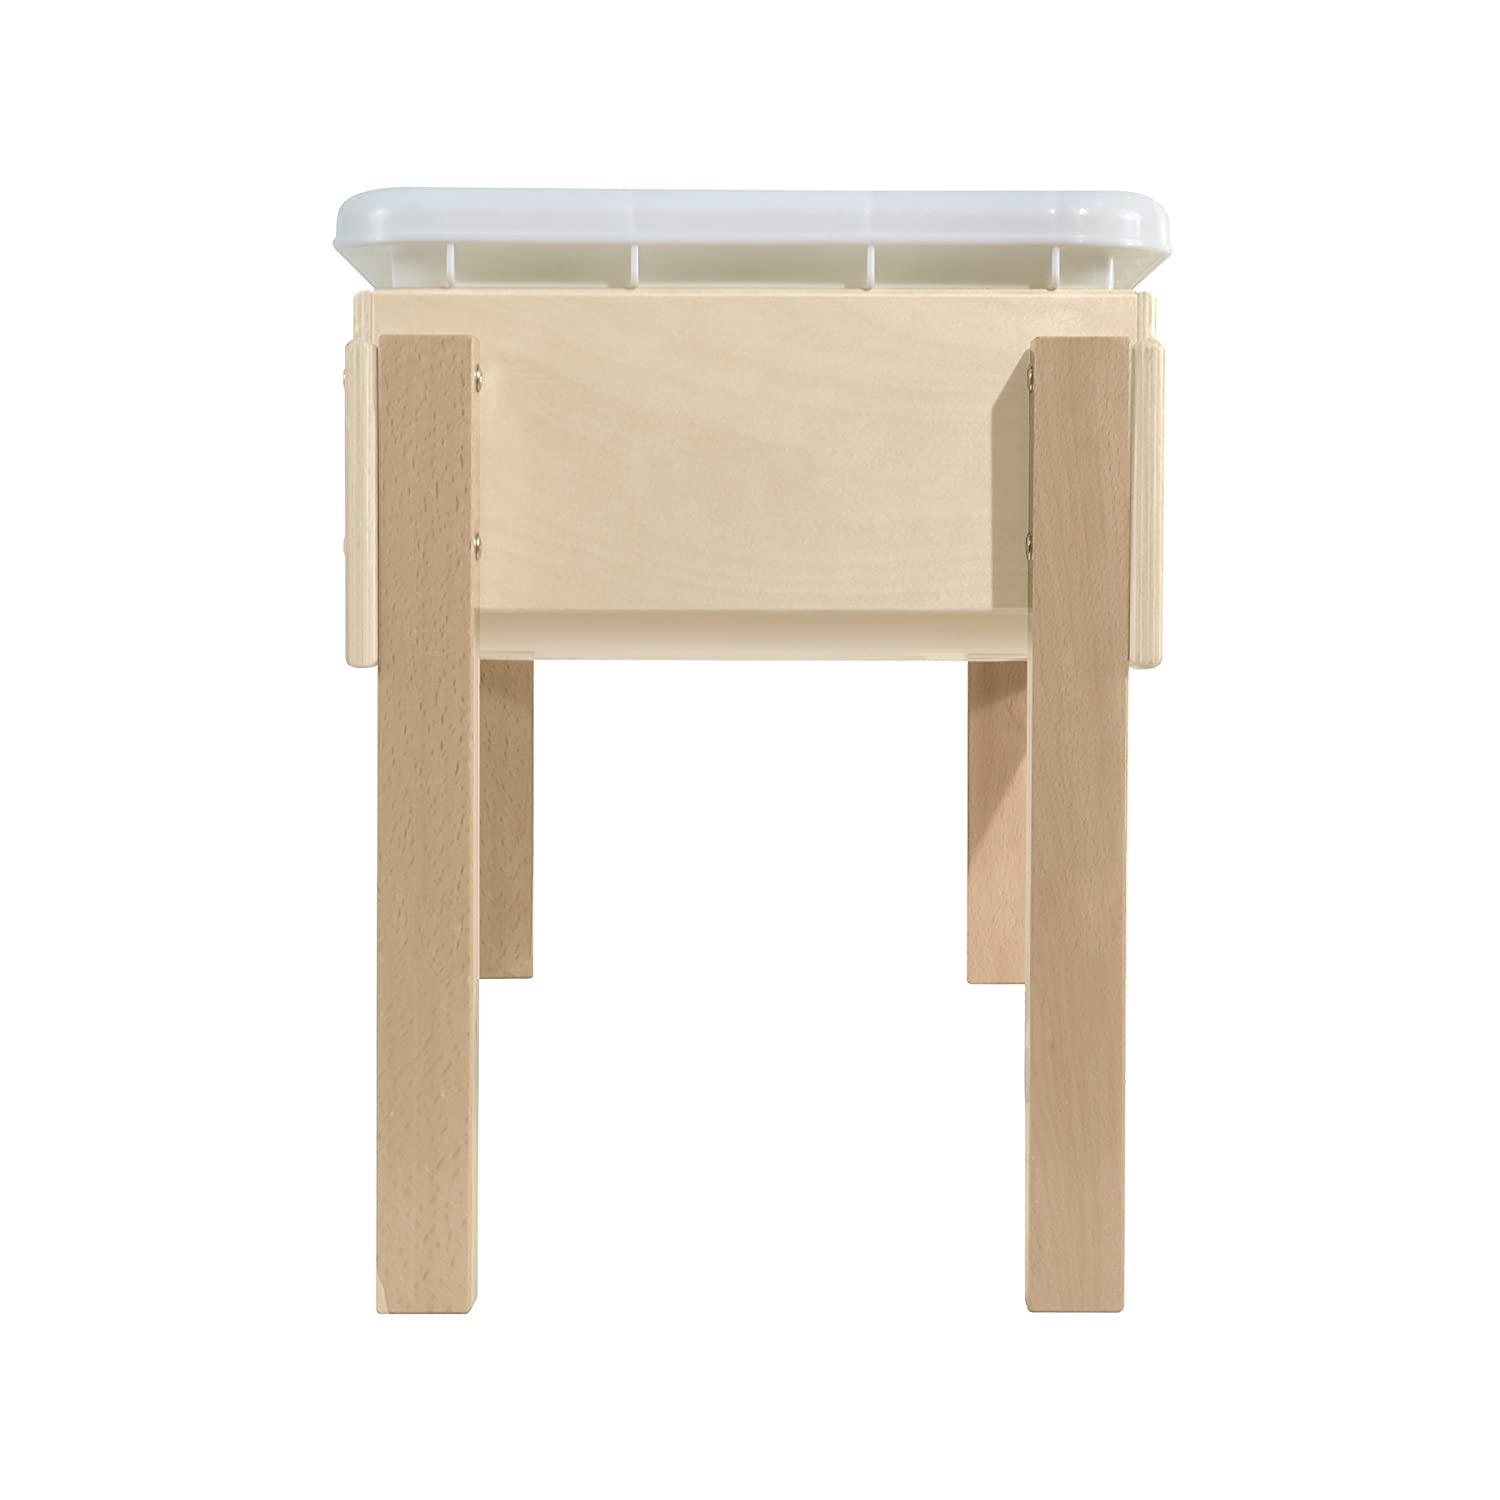 Wood Designs WD11812 Petite Tot Sand and Water Table with Lid, 18 x 28 x 15 H x W x D